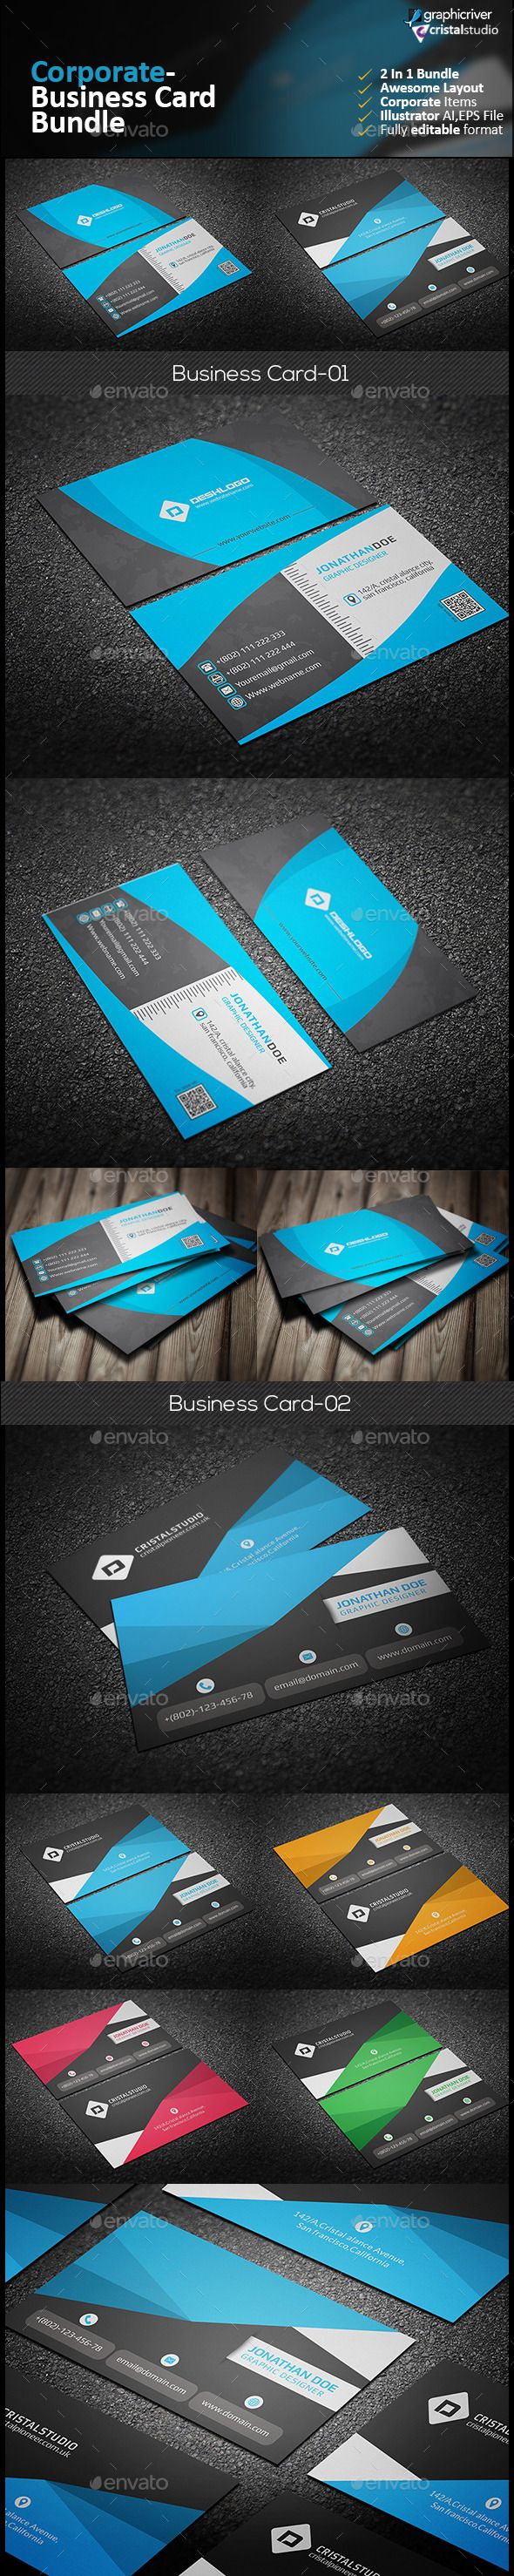 54 best supper creative business card images on pinterest business business card bundle 2 in 1 reheart Images